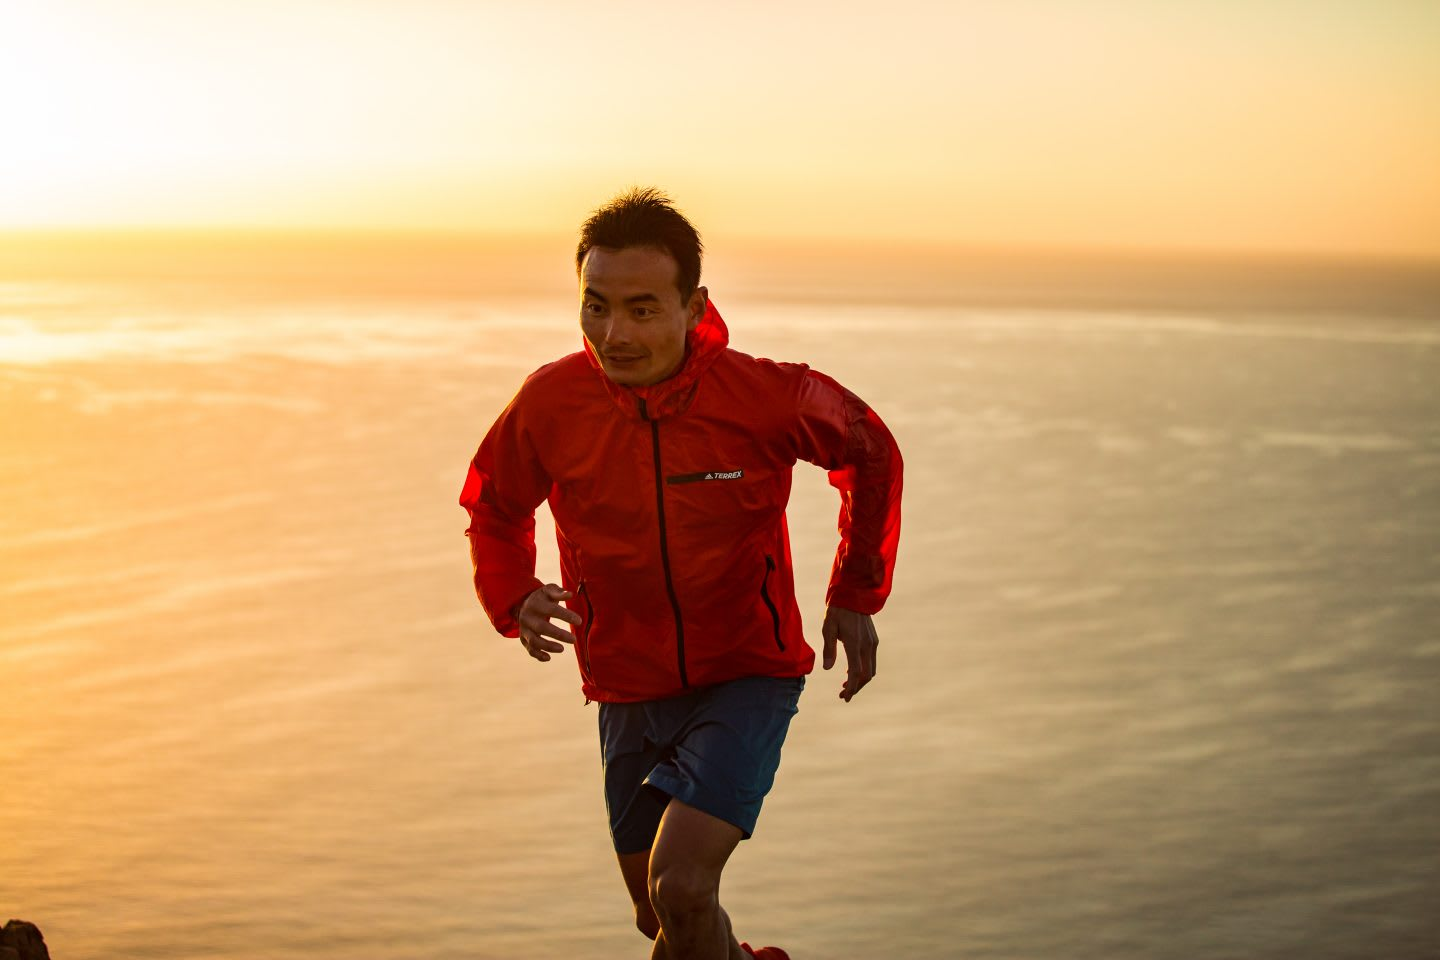 A runner looks focused on the trail ahead while running during the sunset. focus, running, runner, sunset, ocean